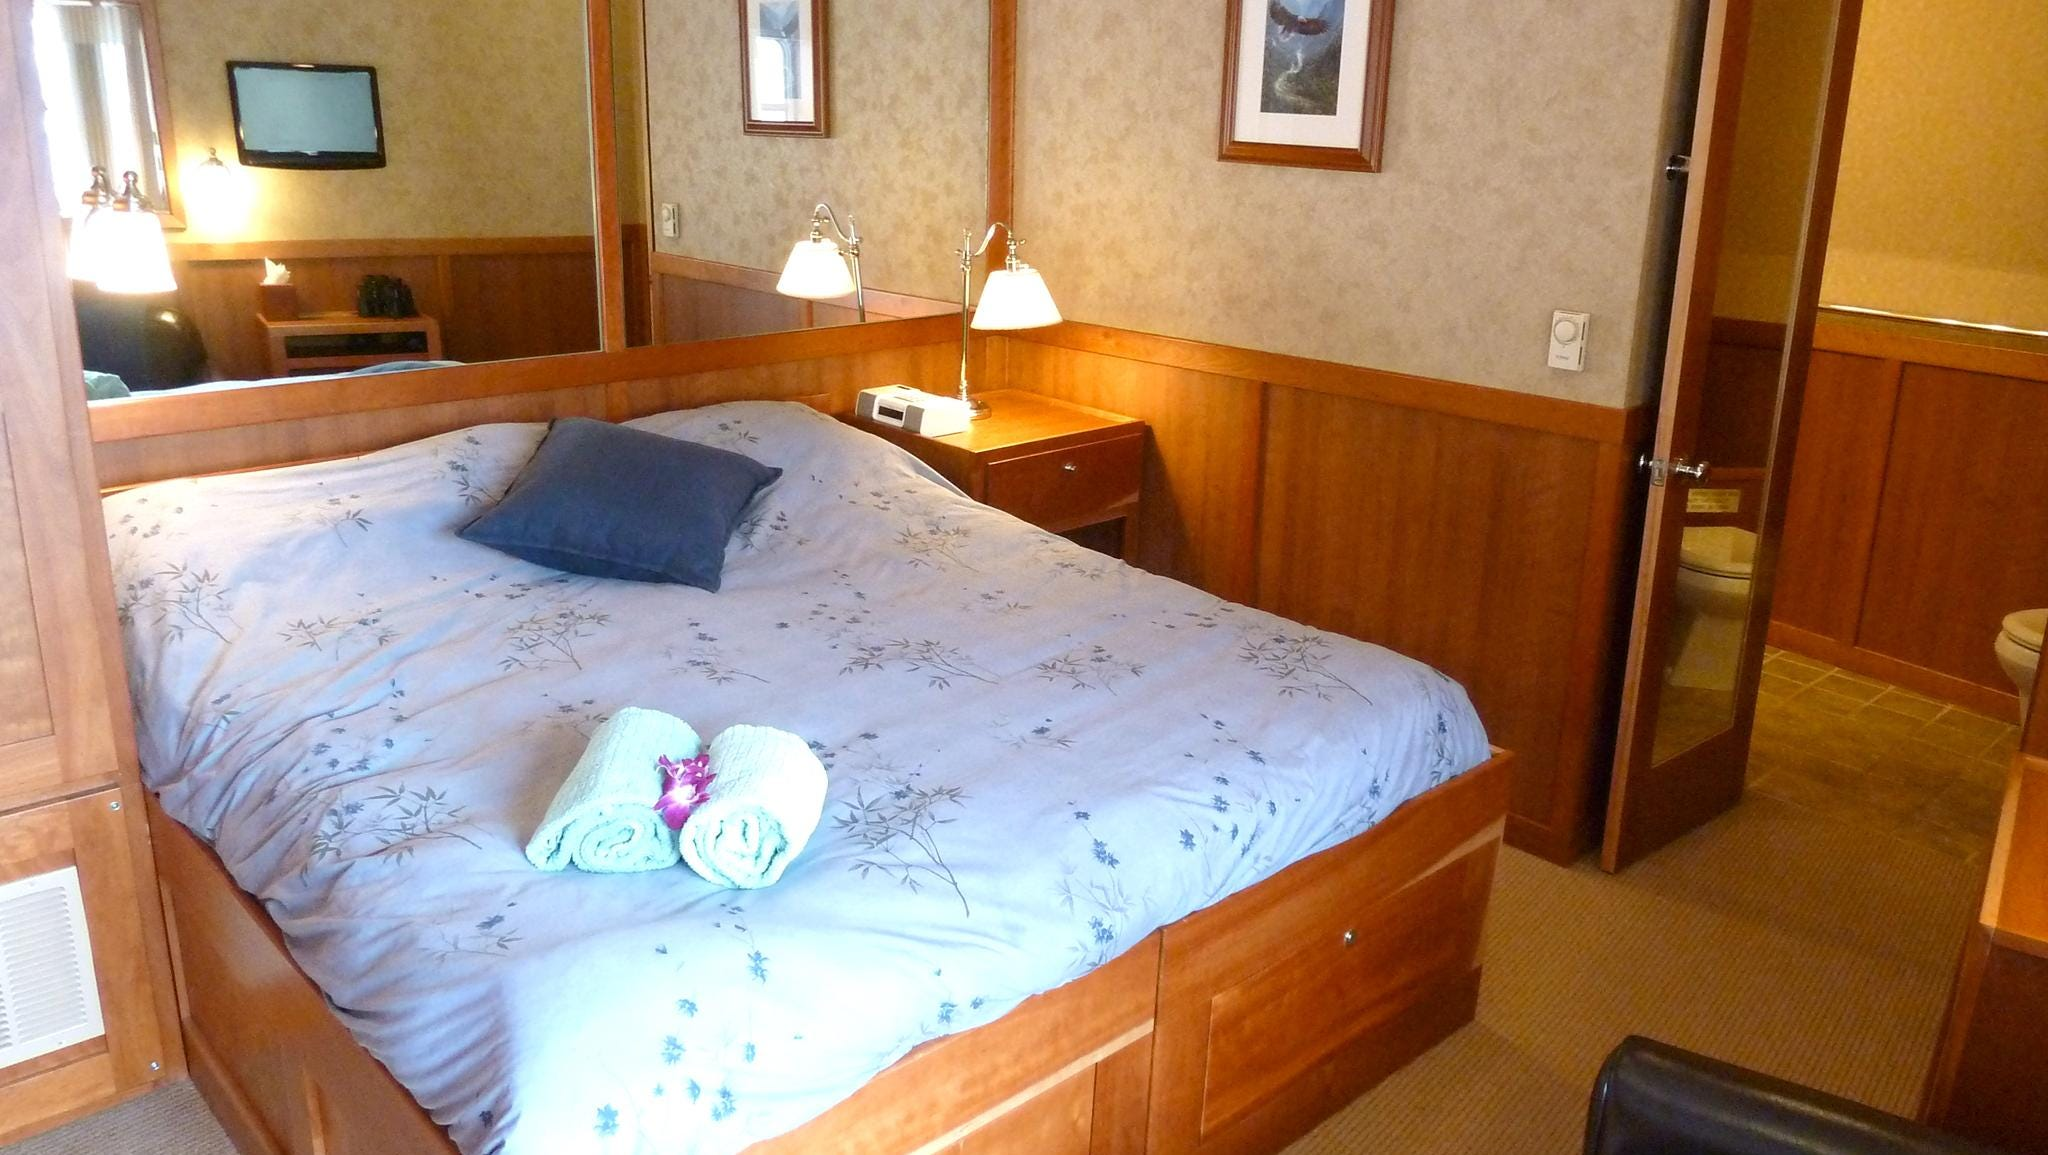 Three Admiral Staterooms feature large bedrooms with king-sized beds and plenty of storage space.